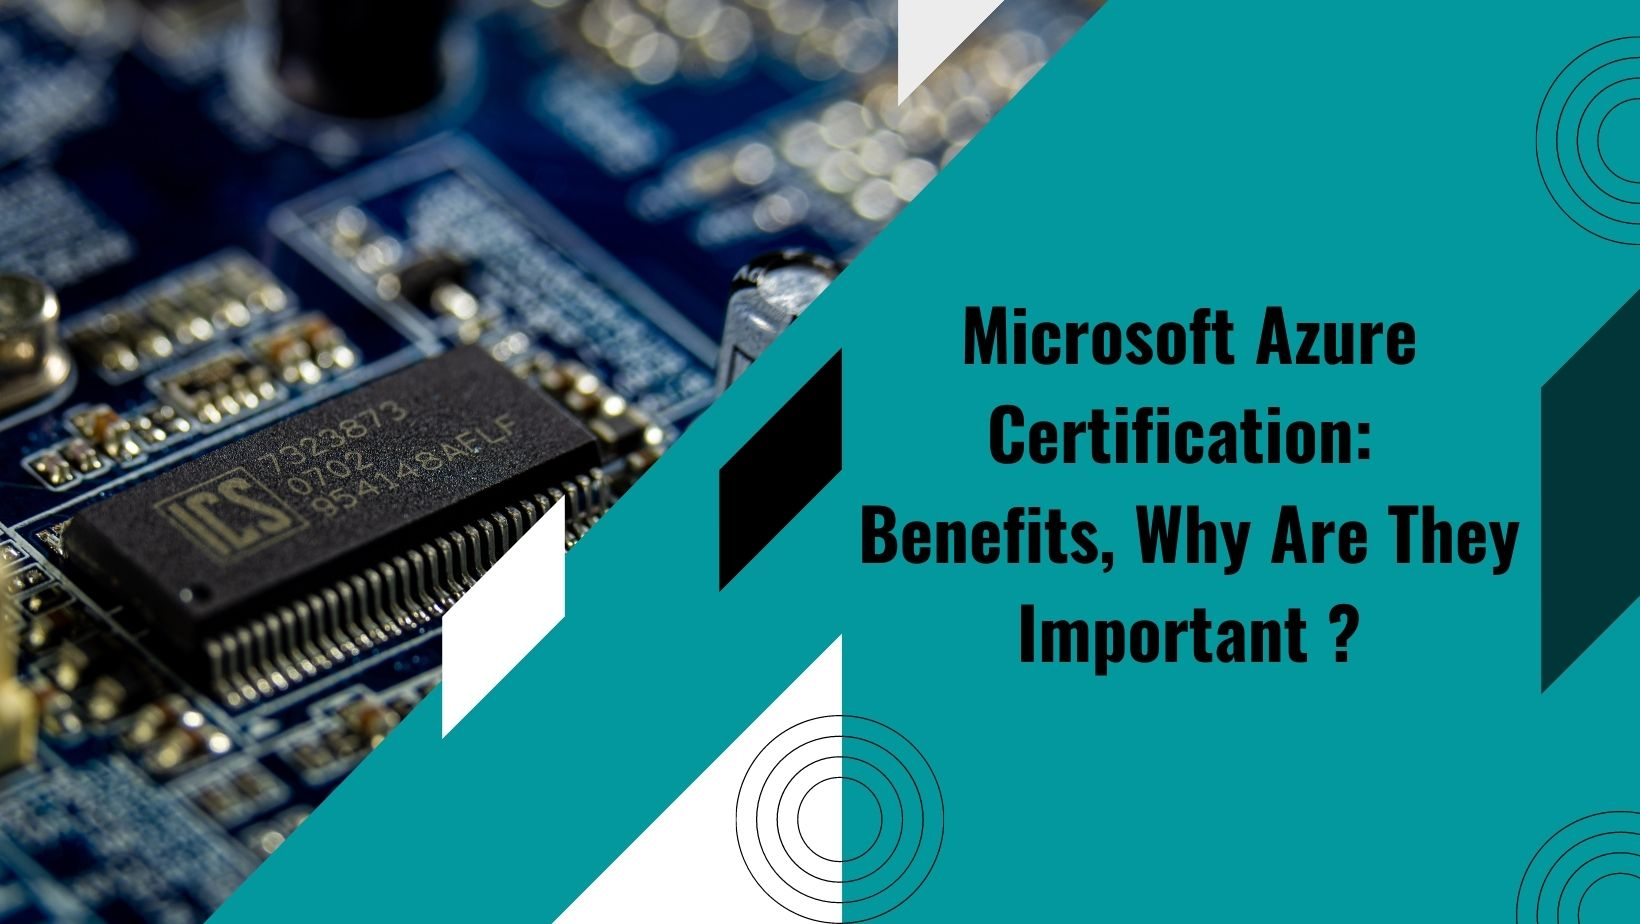 Microsoft Azure Certification: Benefits, Why Are They Important ?